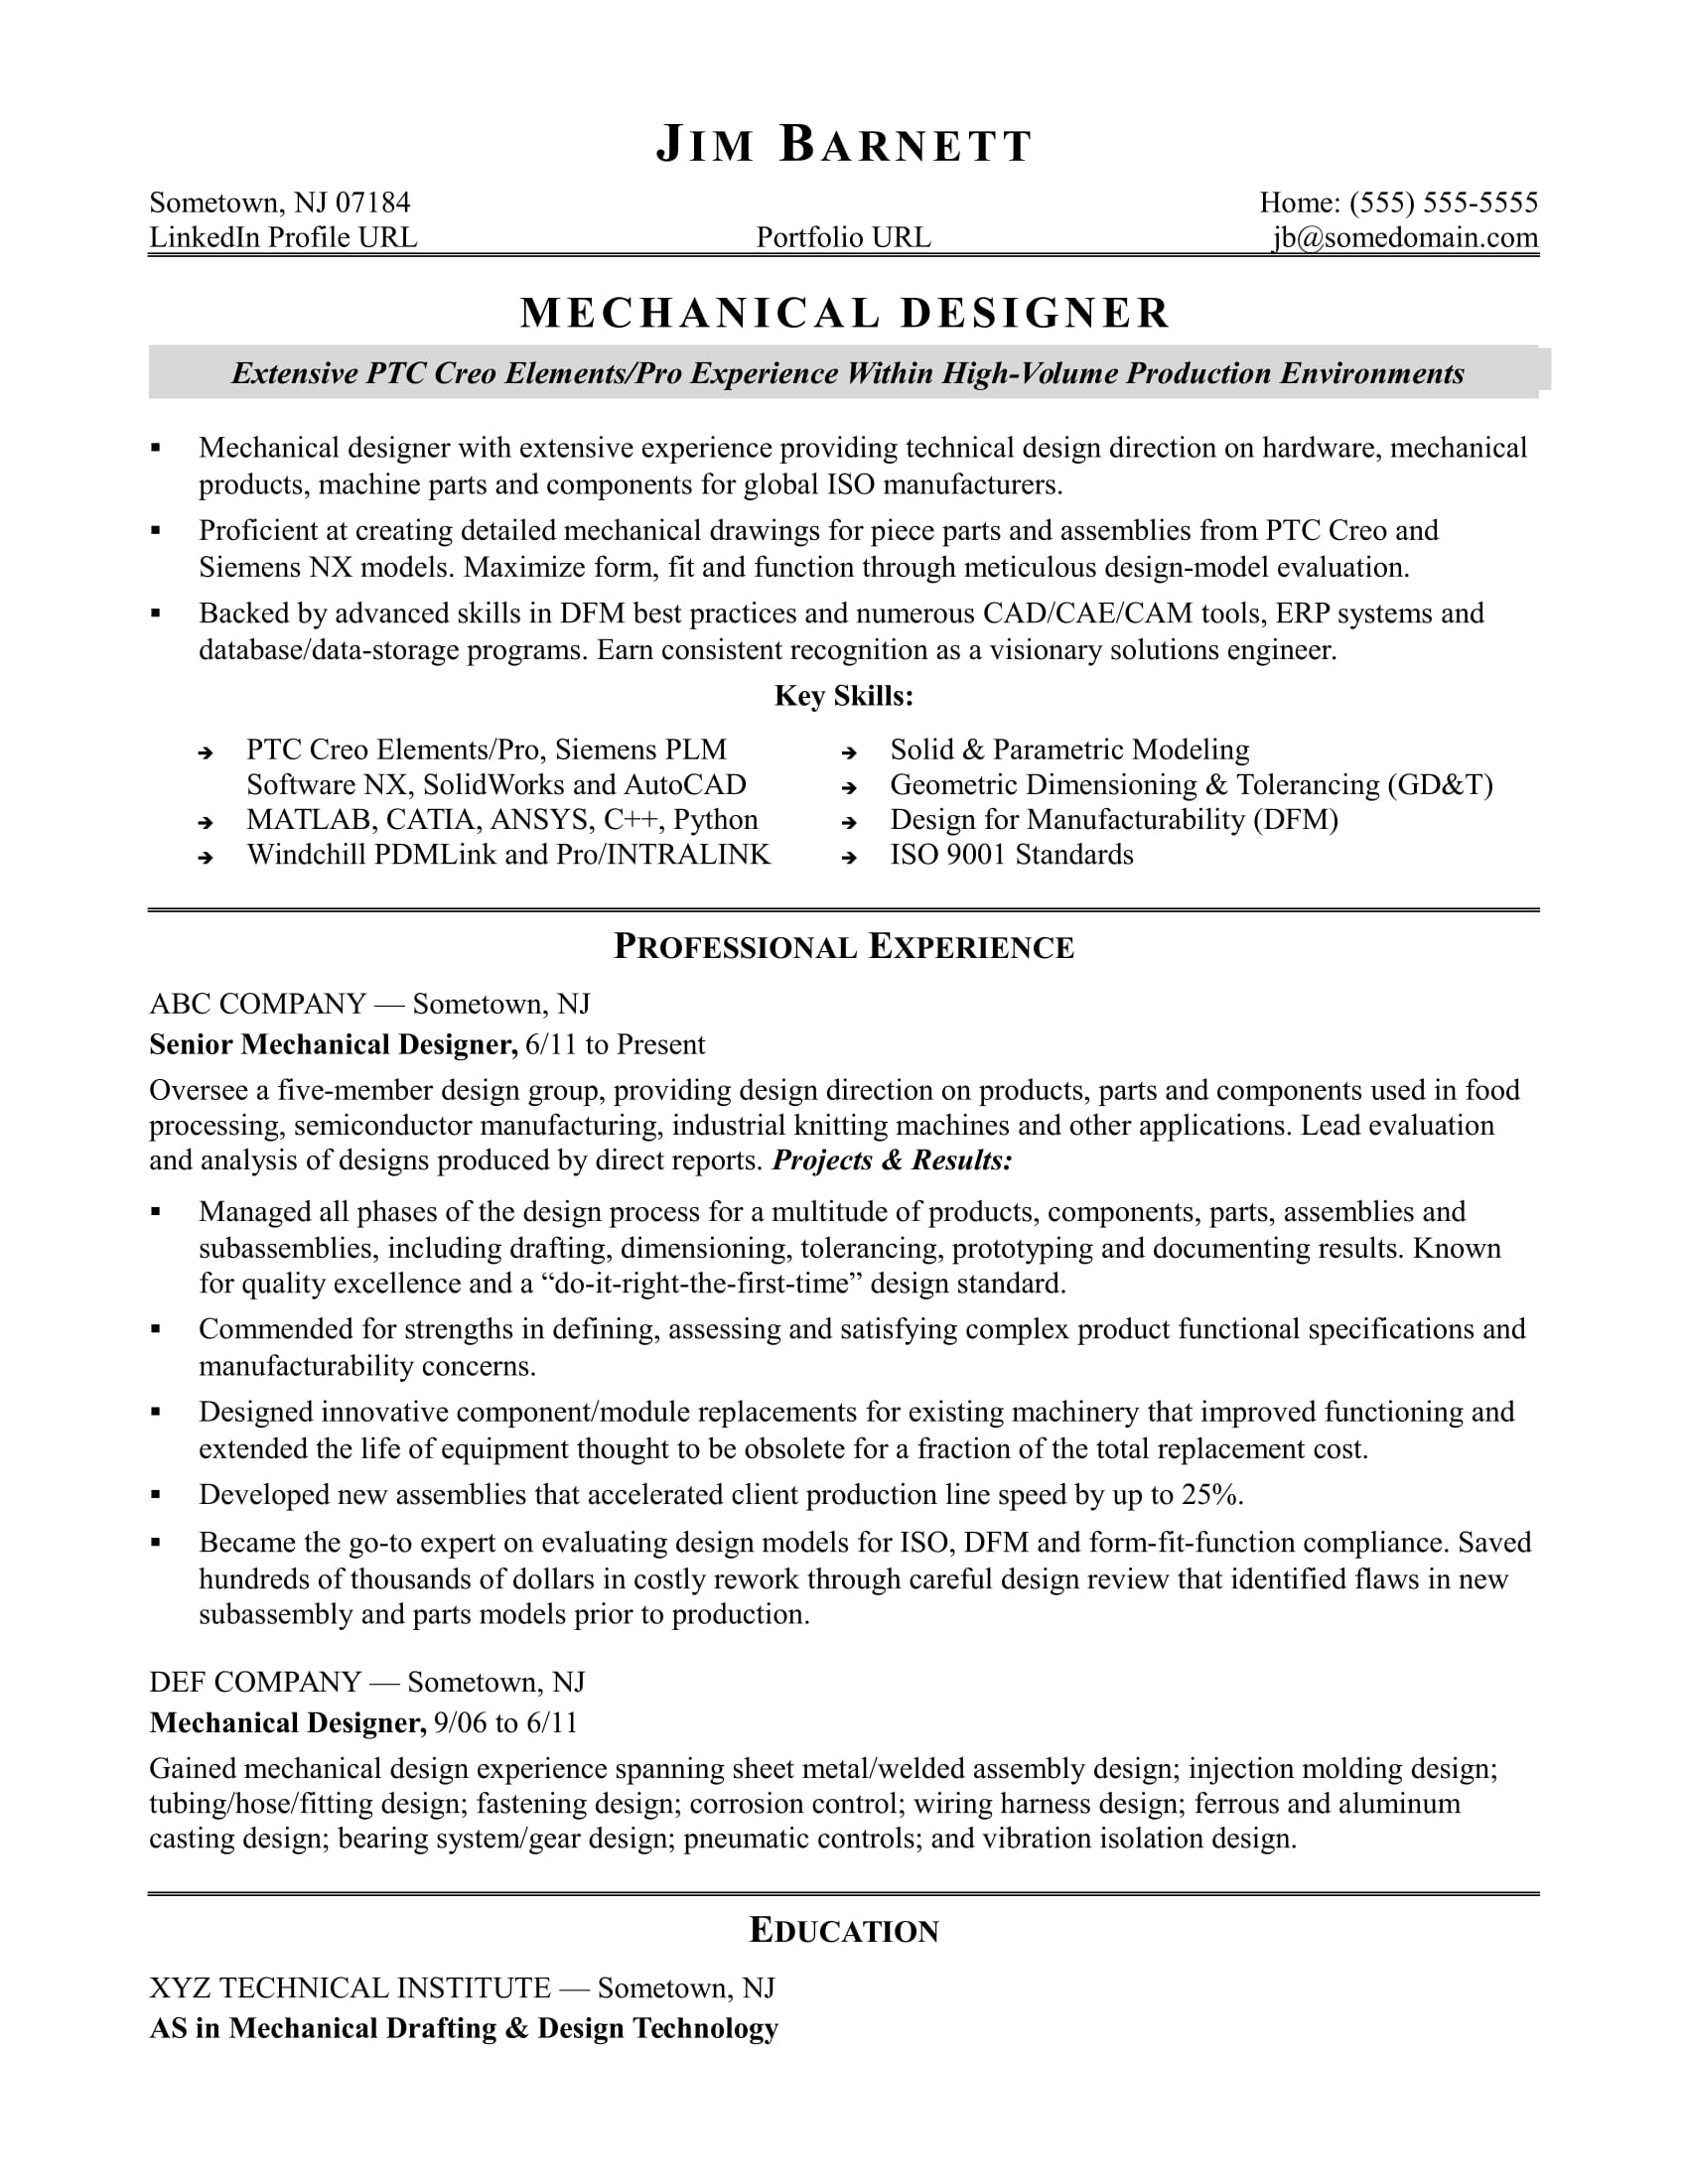 Sample Resume for an Experienced Mechanical Designer | Monster com